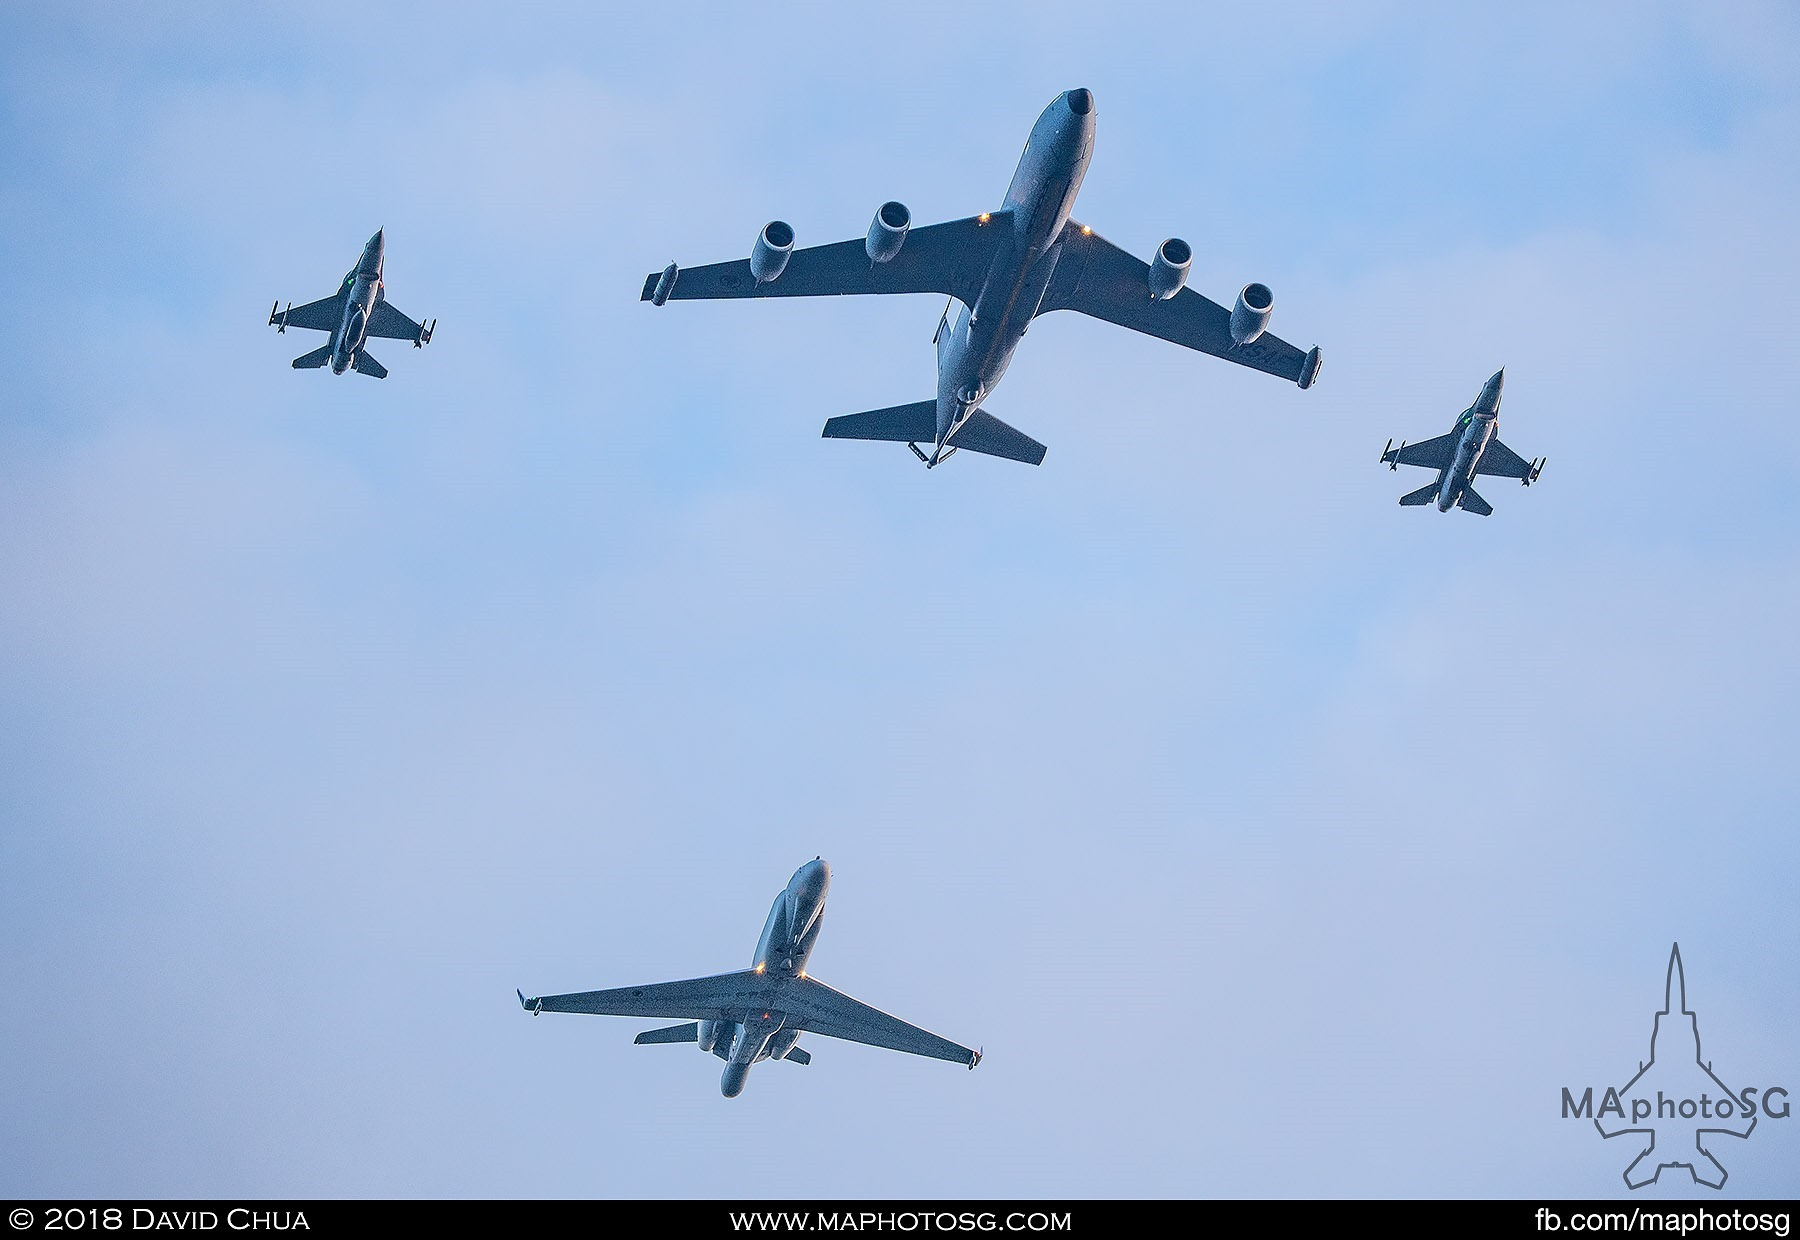 1902 – Formation of KC-135R Stratotanker, Gulfstream G550 CAEWS and 2 F-16 Fighting Falcons